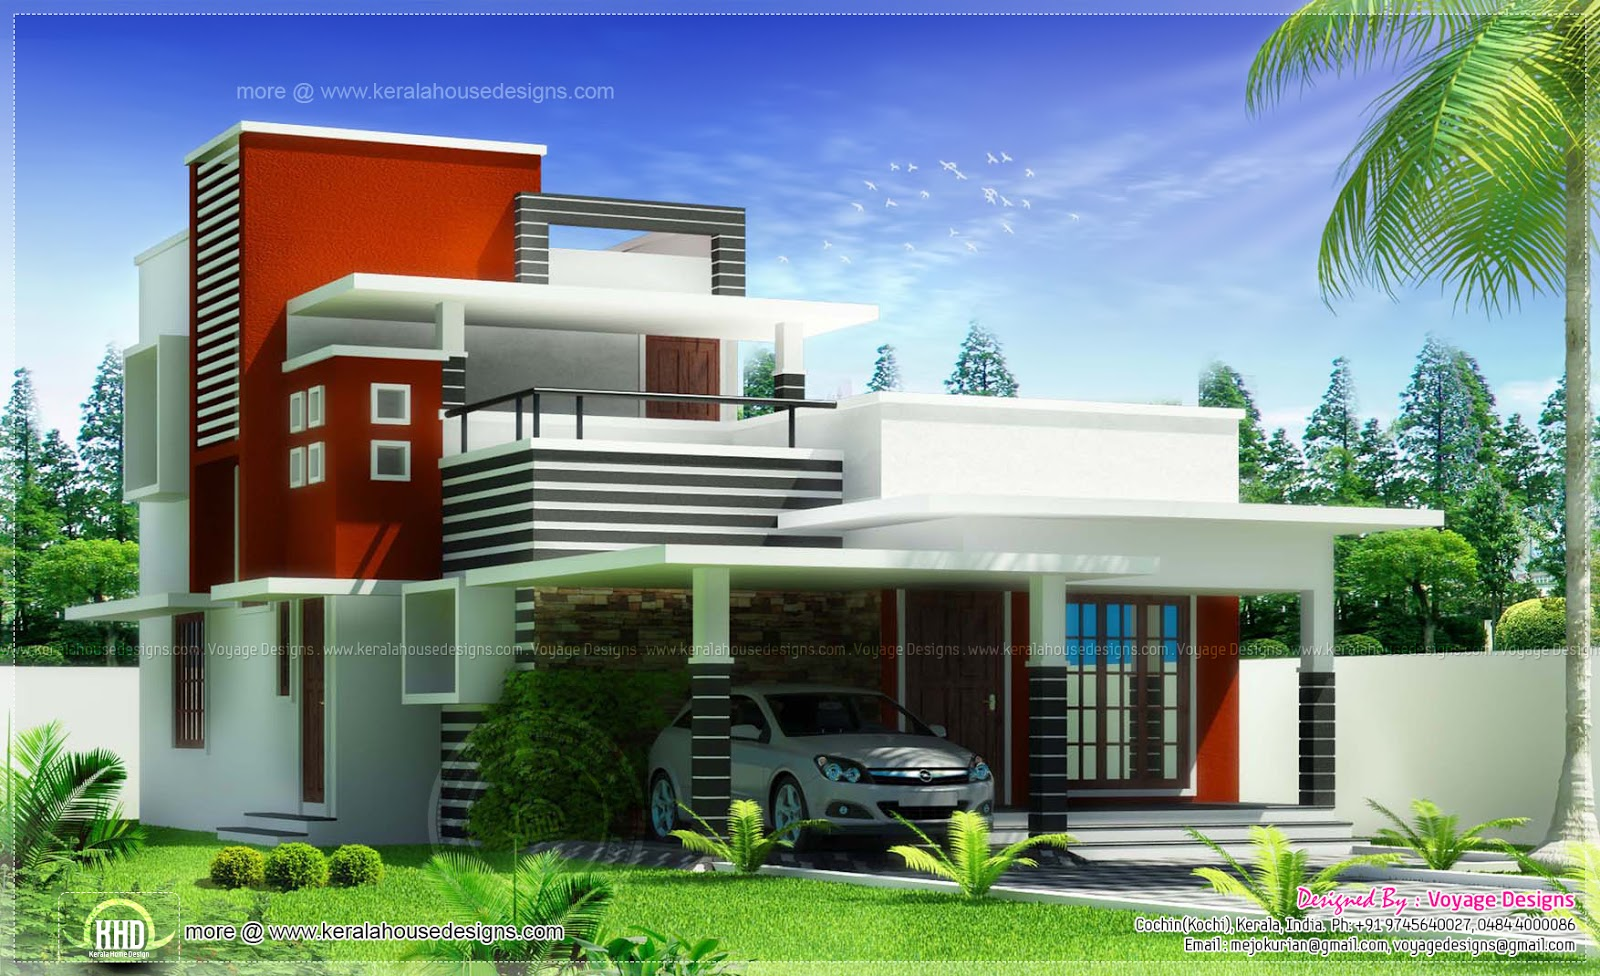 3 bed room contemporary style house kerala home design for Small contemporary house plans in kerala